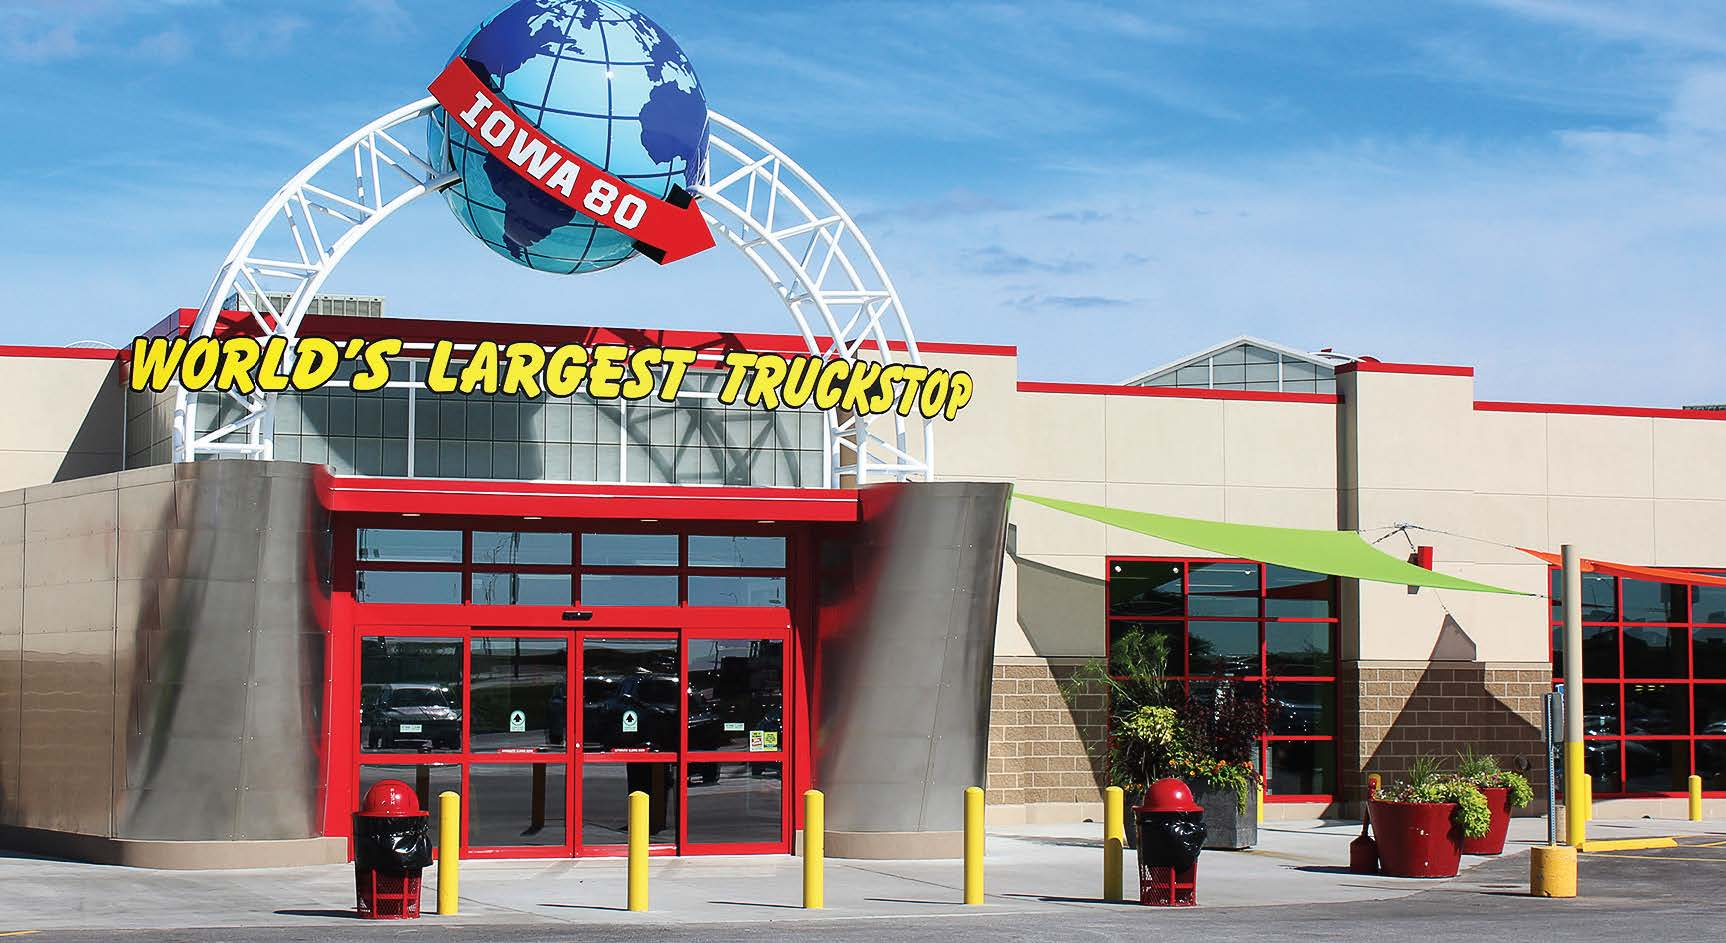 Ta Truck Stop >> World's largest truck stop Walcott, Iowa - The Municipal